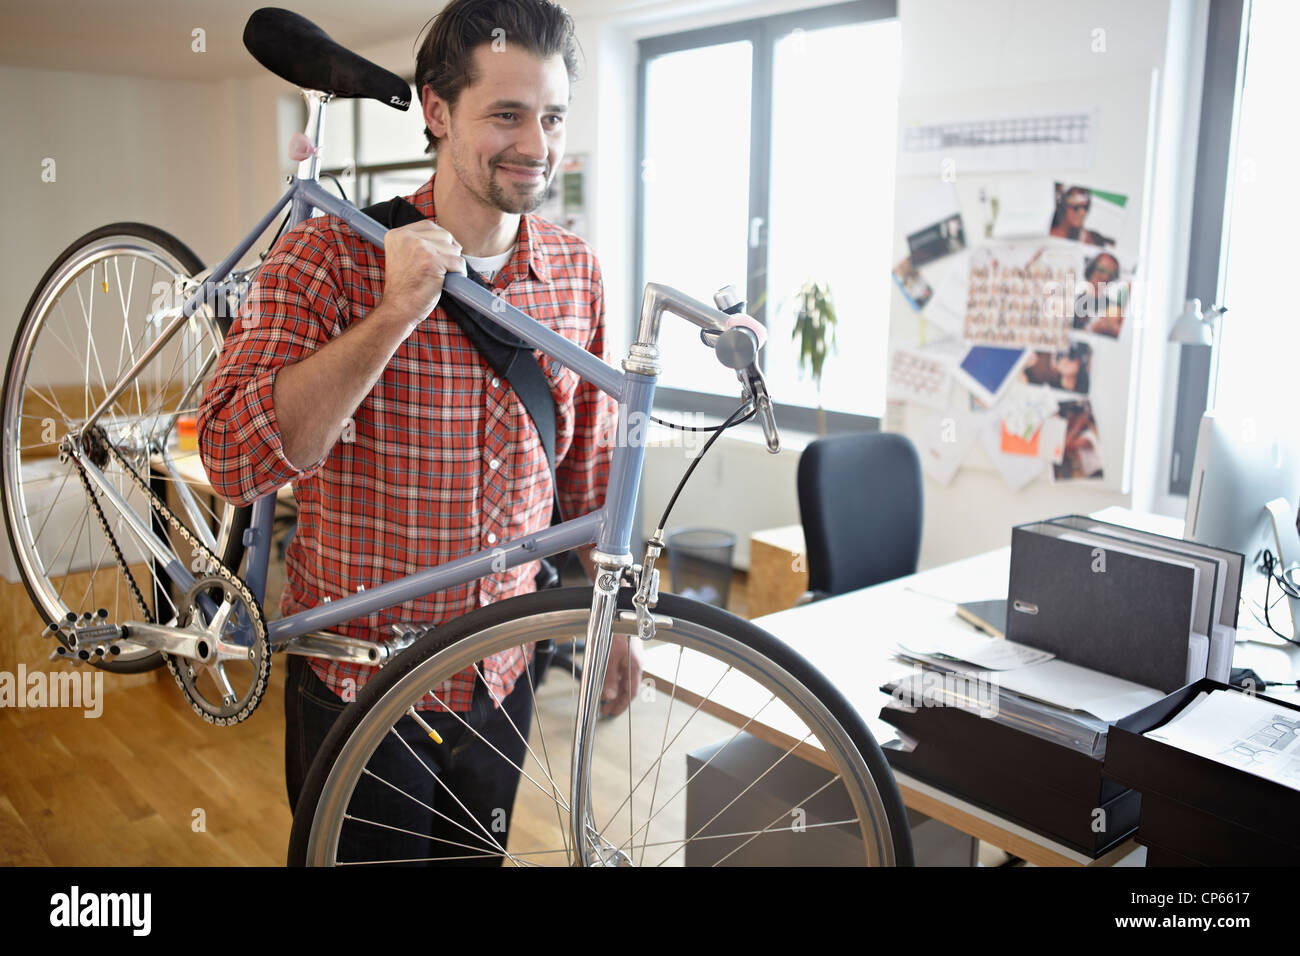 Germany, Cologne, Mid adult man carrying bicycle, smiling - Stock Image